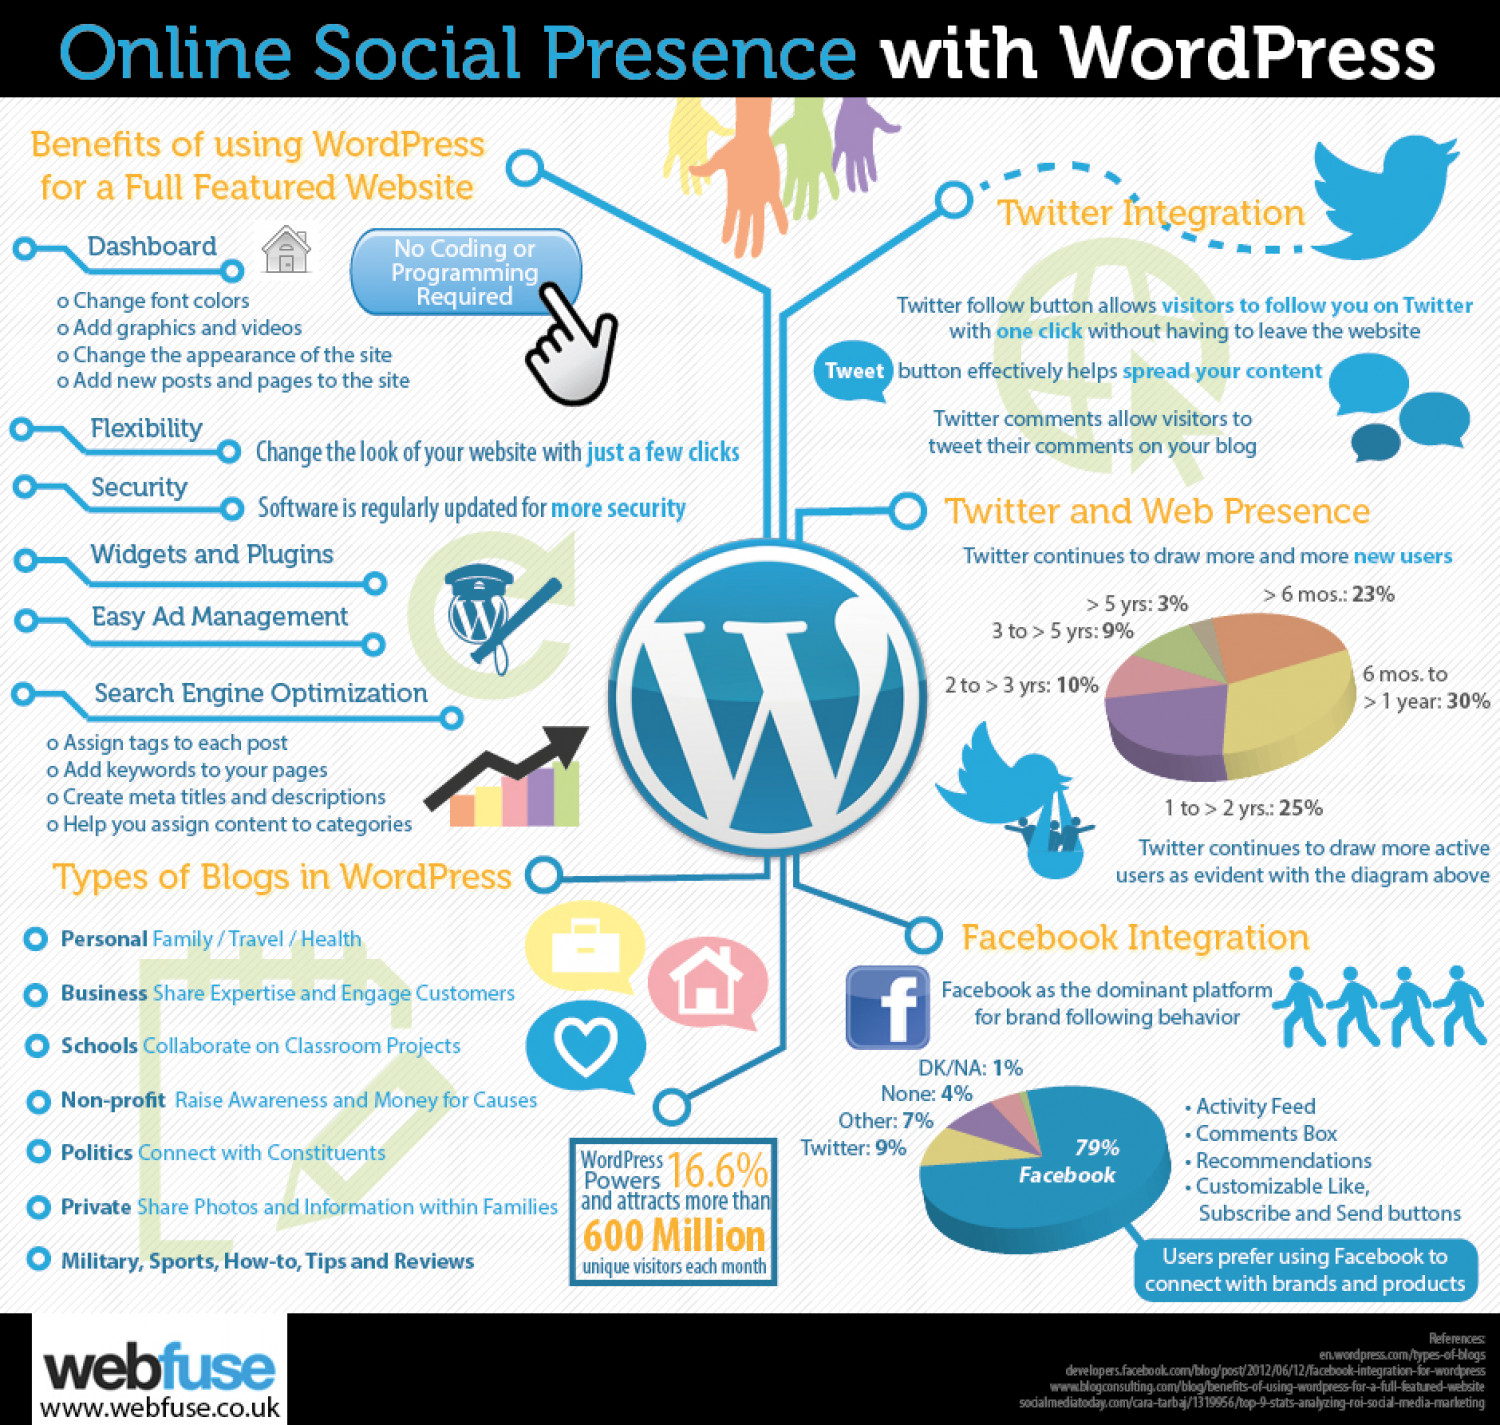 Online Social Presence with WordPress Infographic